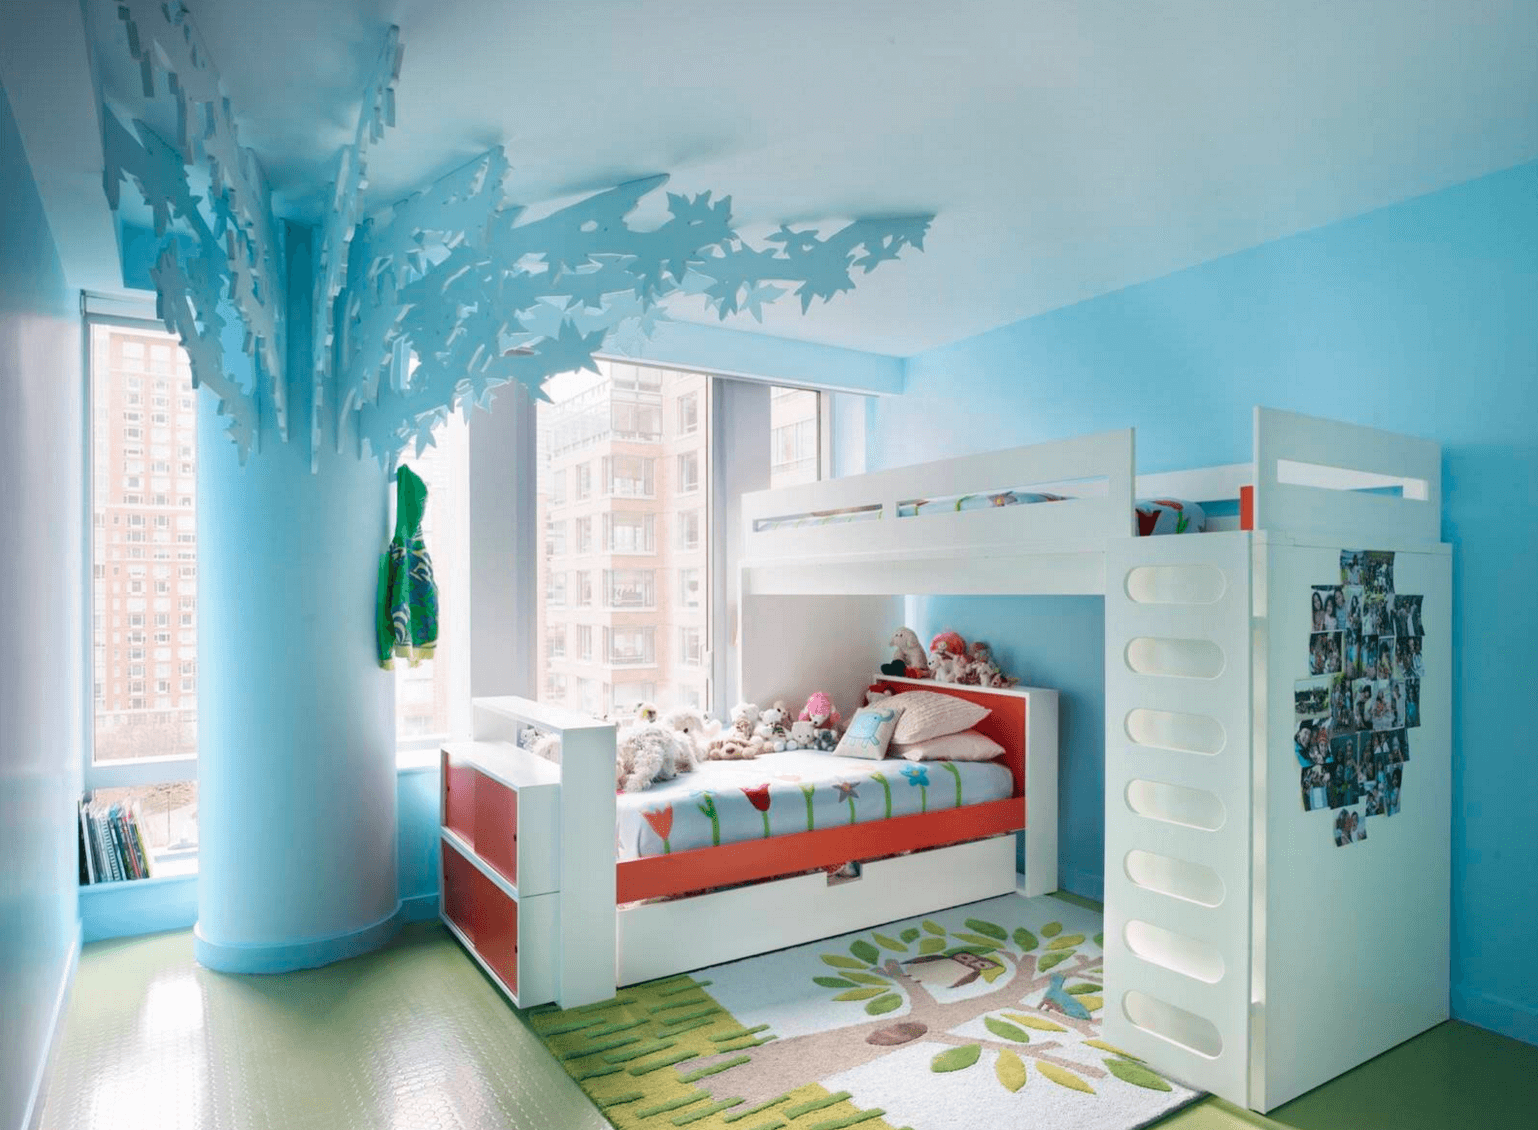 Creative Shared Bedroom Ideas for a Modern Kids\' Room | Freshome.com